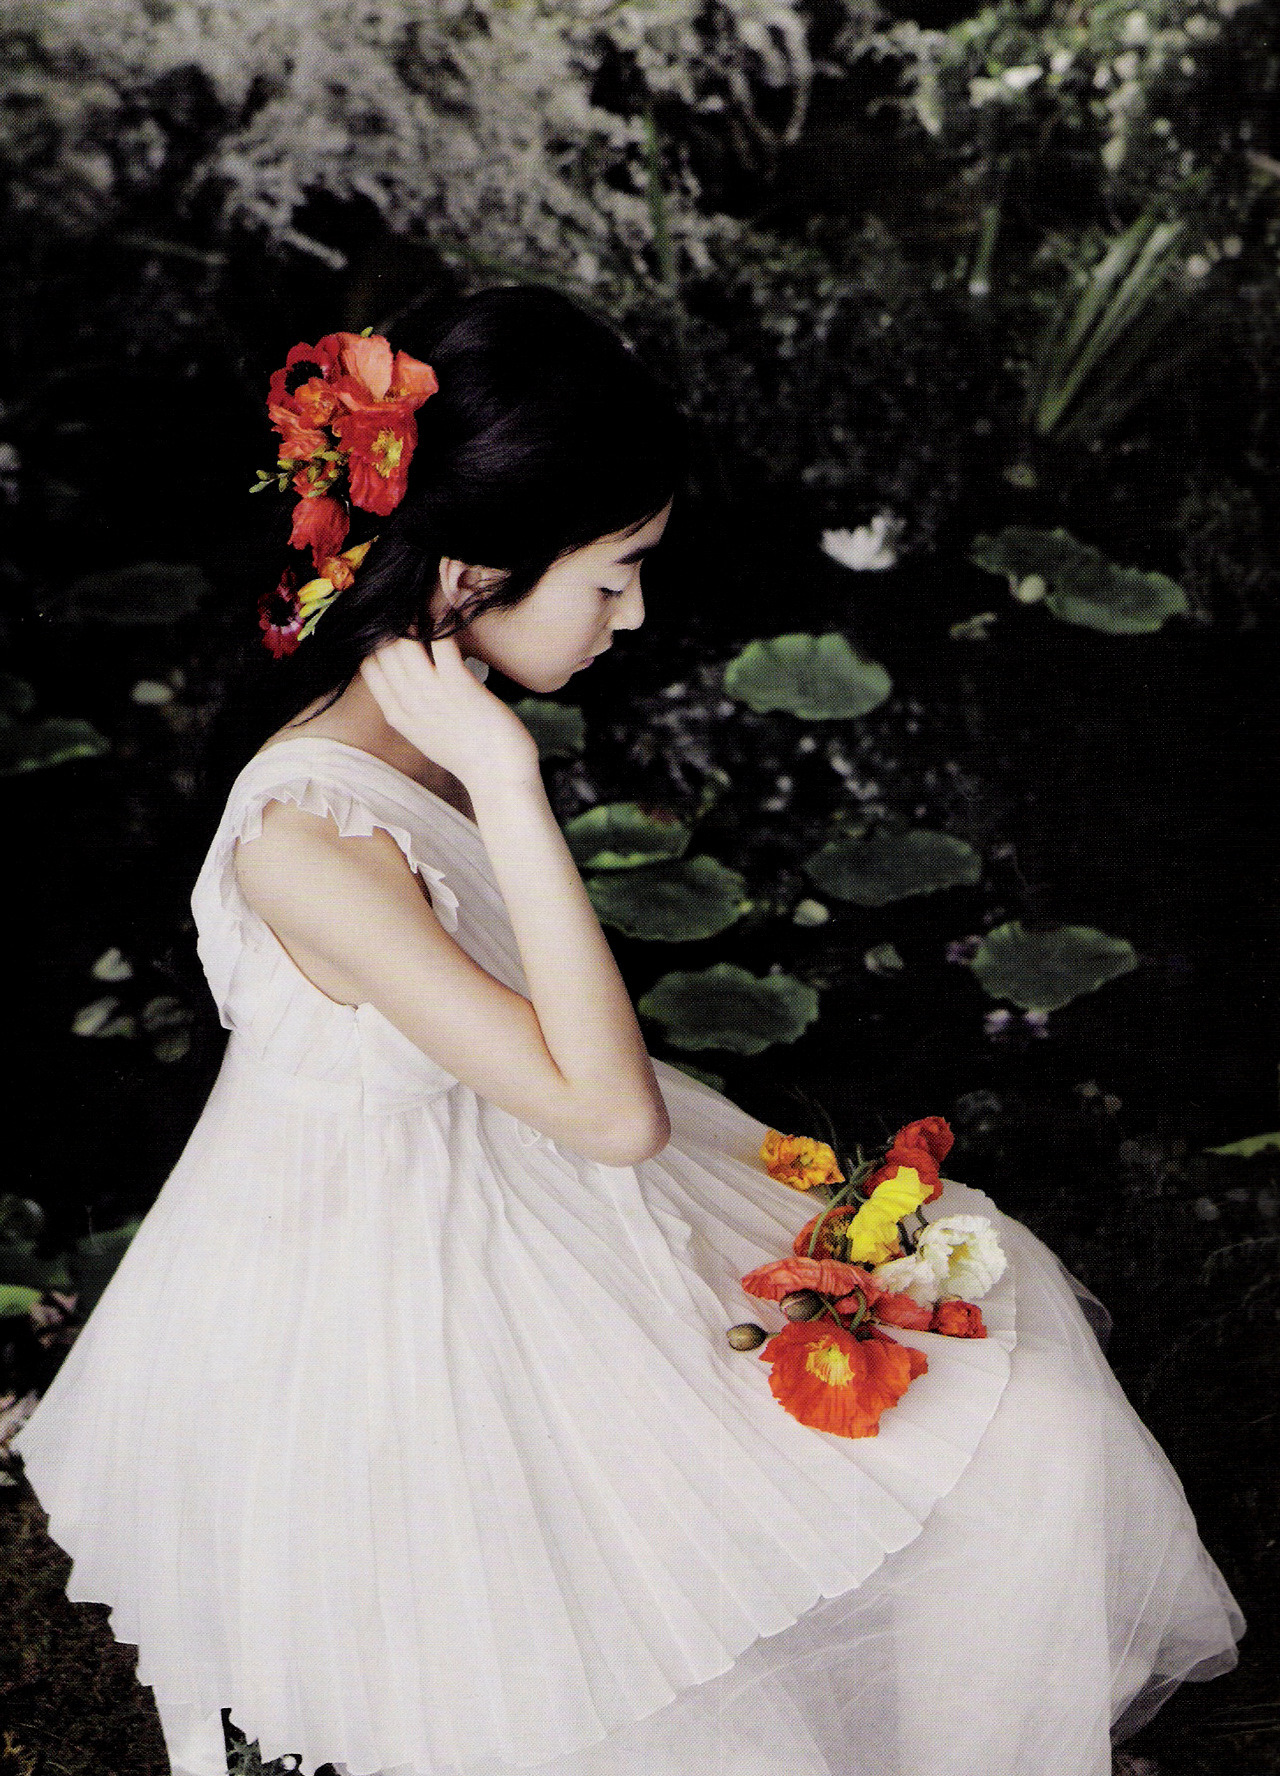 moldavia:  Wang Ji-Won in Vogue Girl Korea April 2007 by Oh Joong Seok